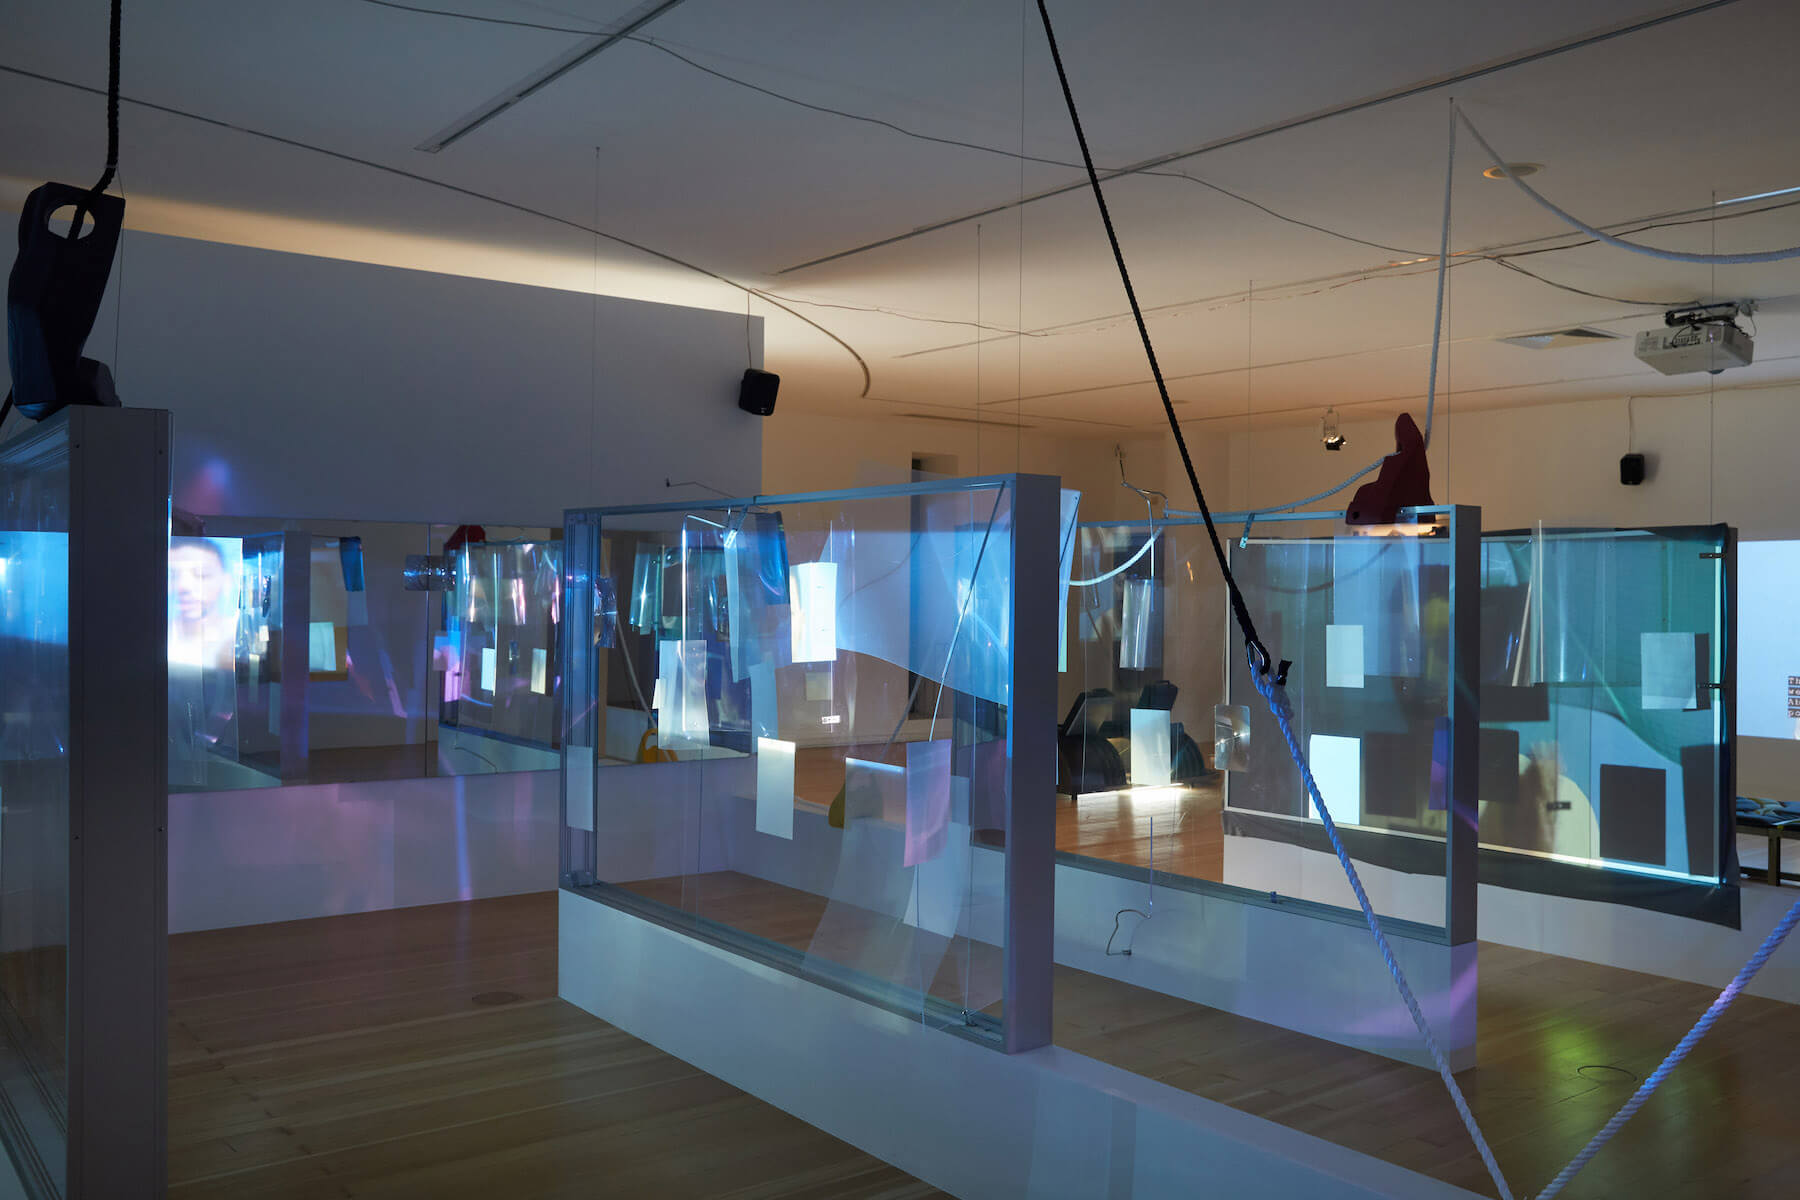 Schirn_Neil_Beloufa_Global_Agreement_Installation_View_Foto_Marc_Krause_15